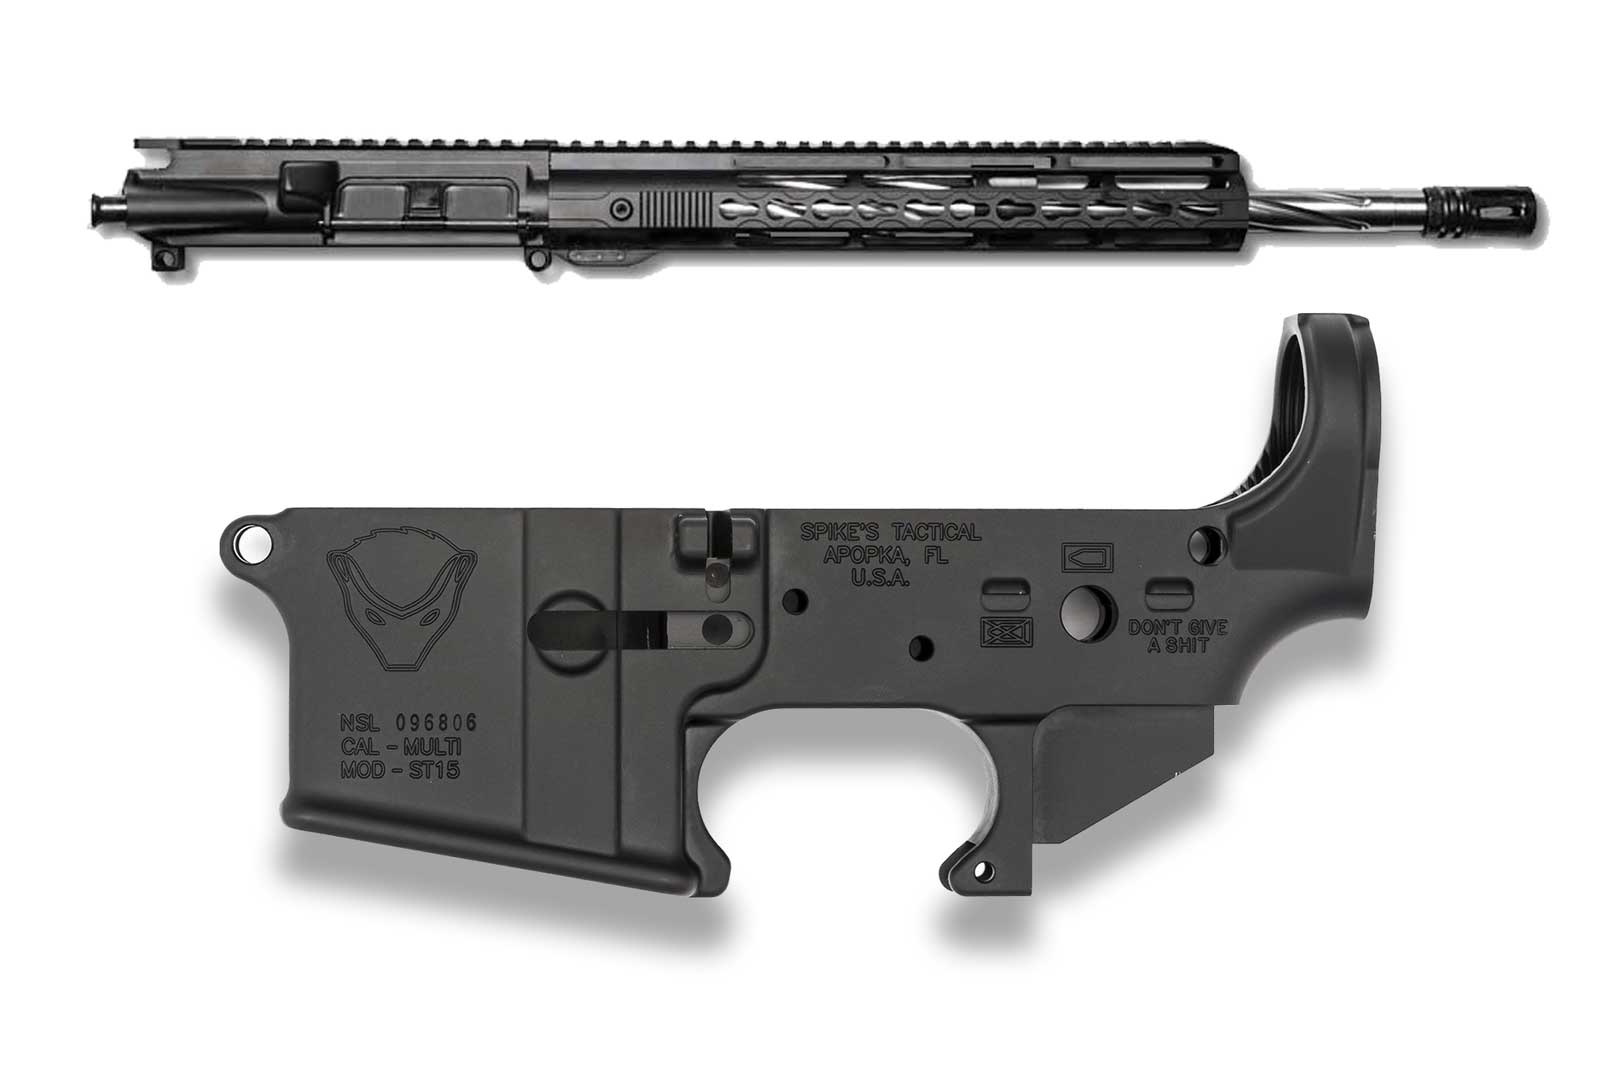 ar15-upper-assembly-with-spikes-tactical-lower-16-223-wylde-spiral-flute-honey-badger-160377